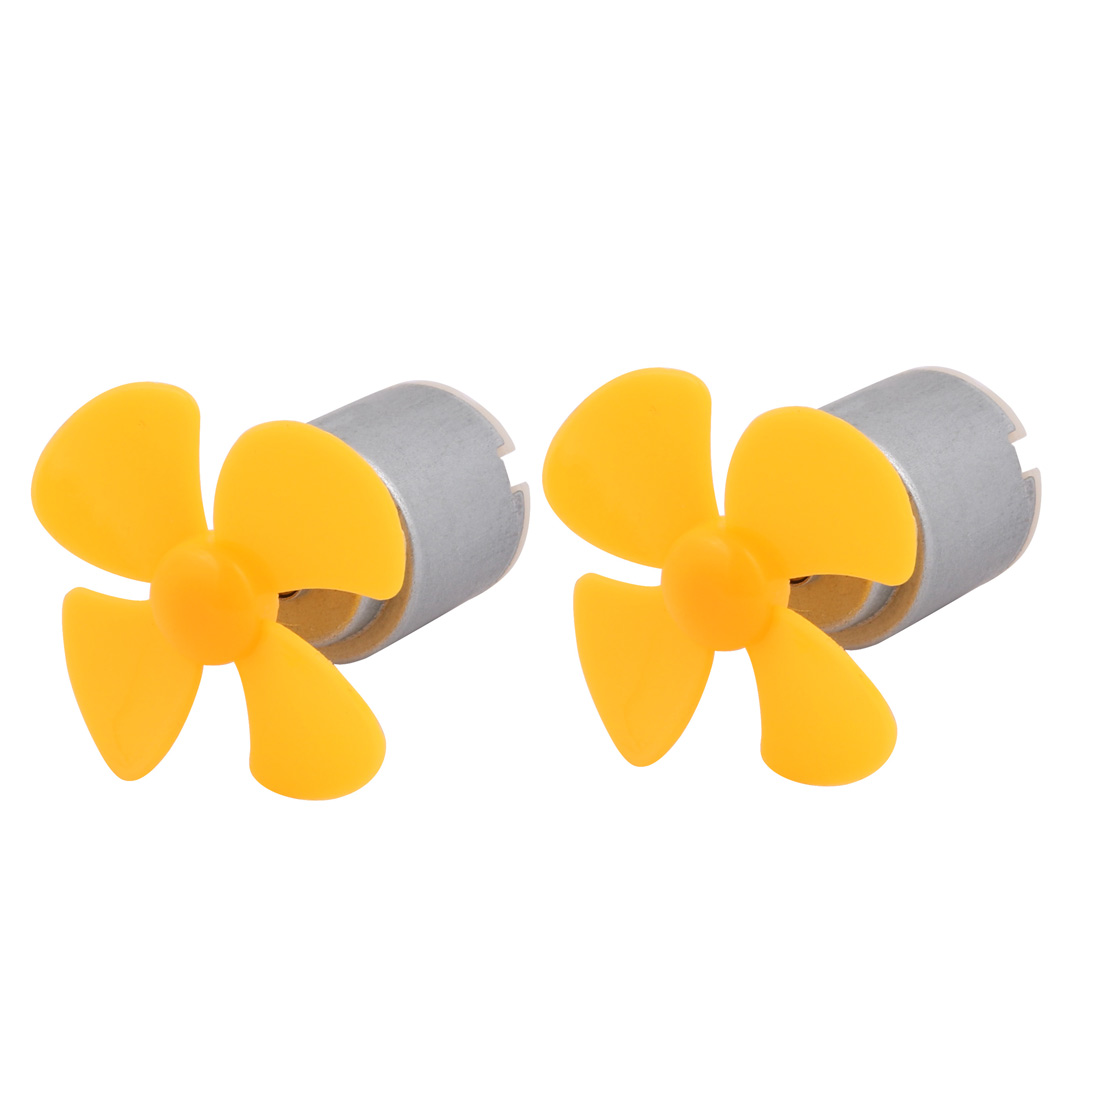 2pcs DC 3V 0.13A 14000RPM Strong Force Motor 4 Vanes 40mm Yellow Propeller for RC Aircraft